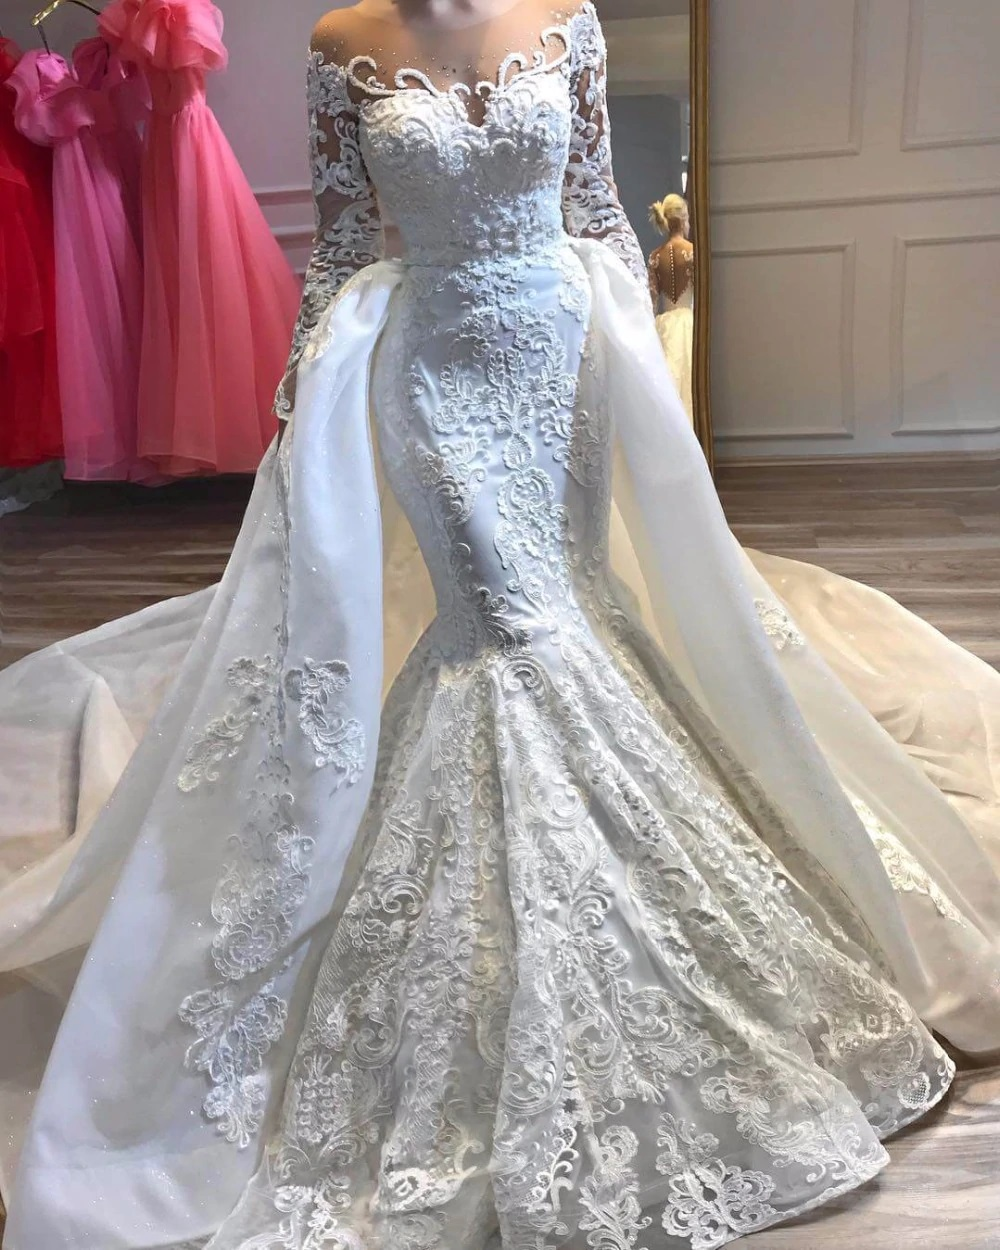 Jpae1025 Luxury Lace Mermaid Wedding Dress With Detachable Skirt Illusion Long Sleeve Wedding Gowns Plus Size Jp S Boutique,Wedding Dress Chicago Affordable